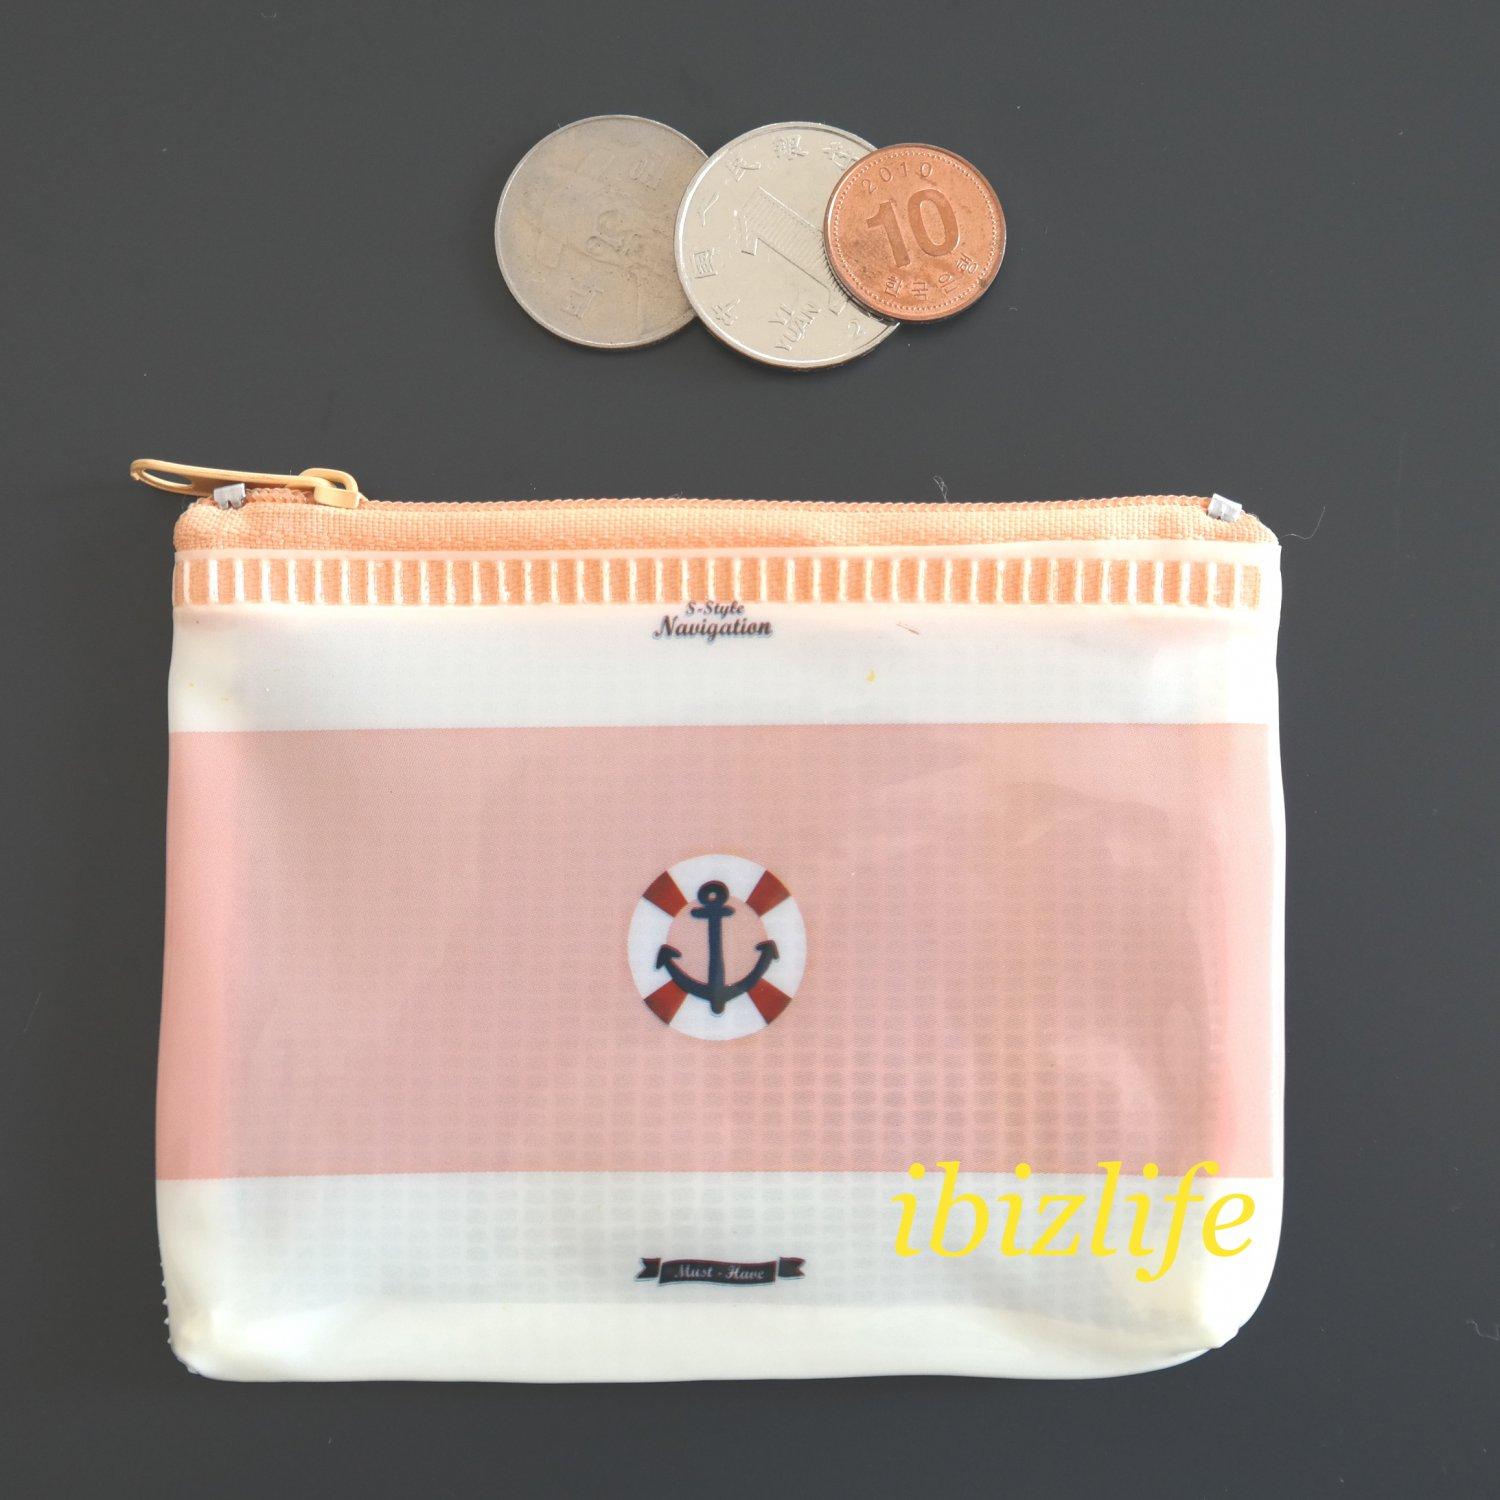 Fashion pocket for coins or cards with Boat Anchor printing(FP09)